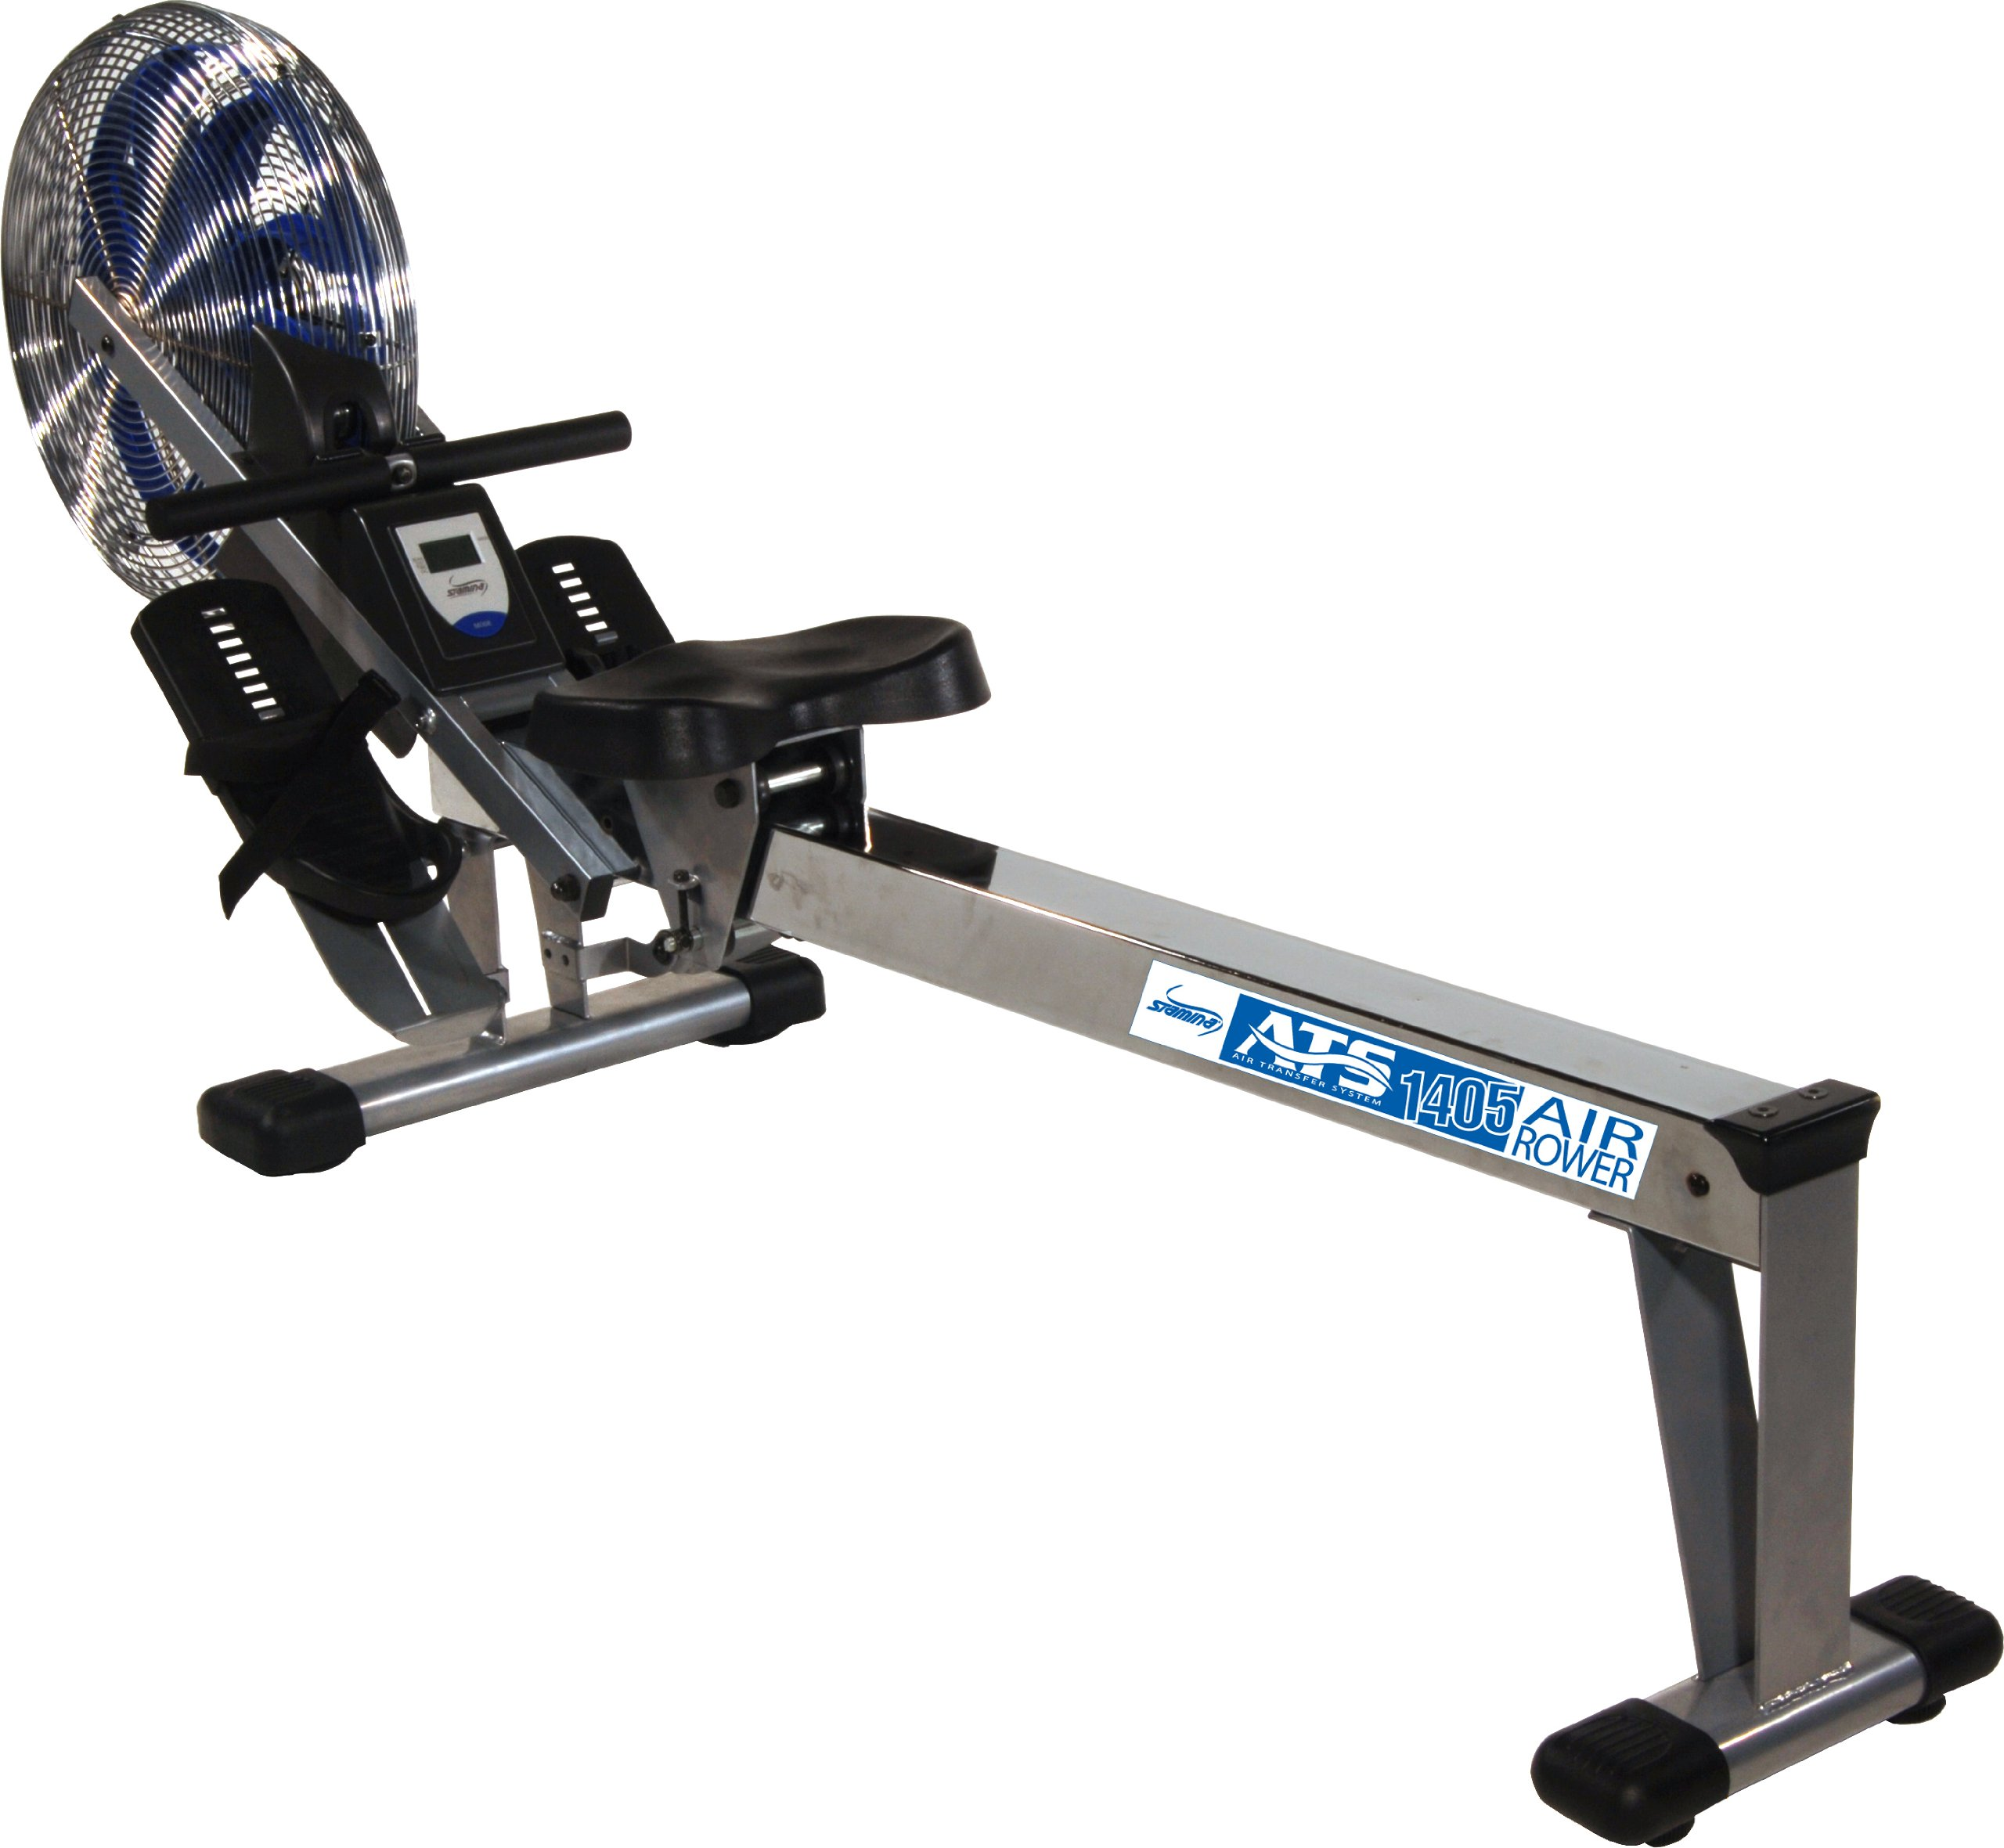 Stamina 35-1405 ATS Air Rower by Stamina